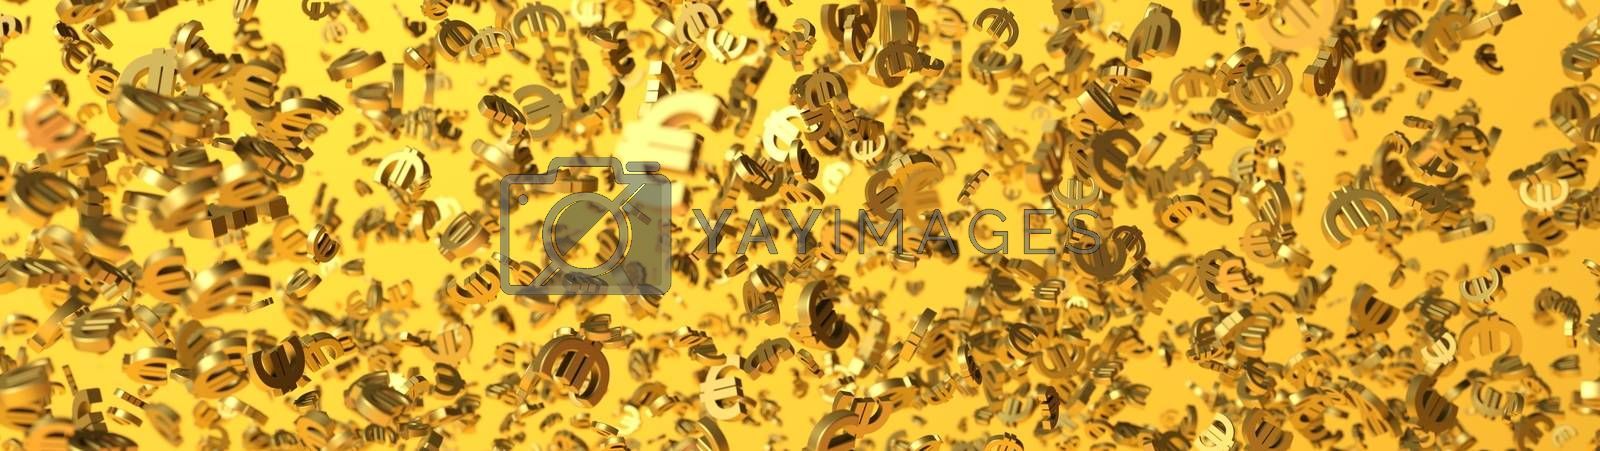 3D rendering web banner with multiple euro signs